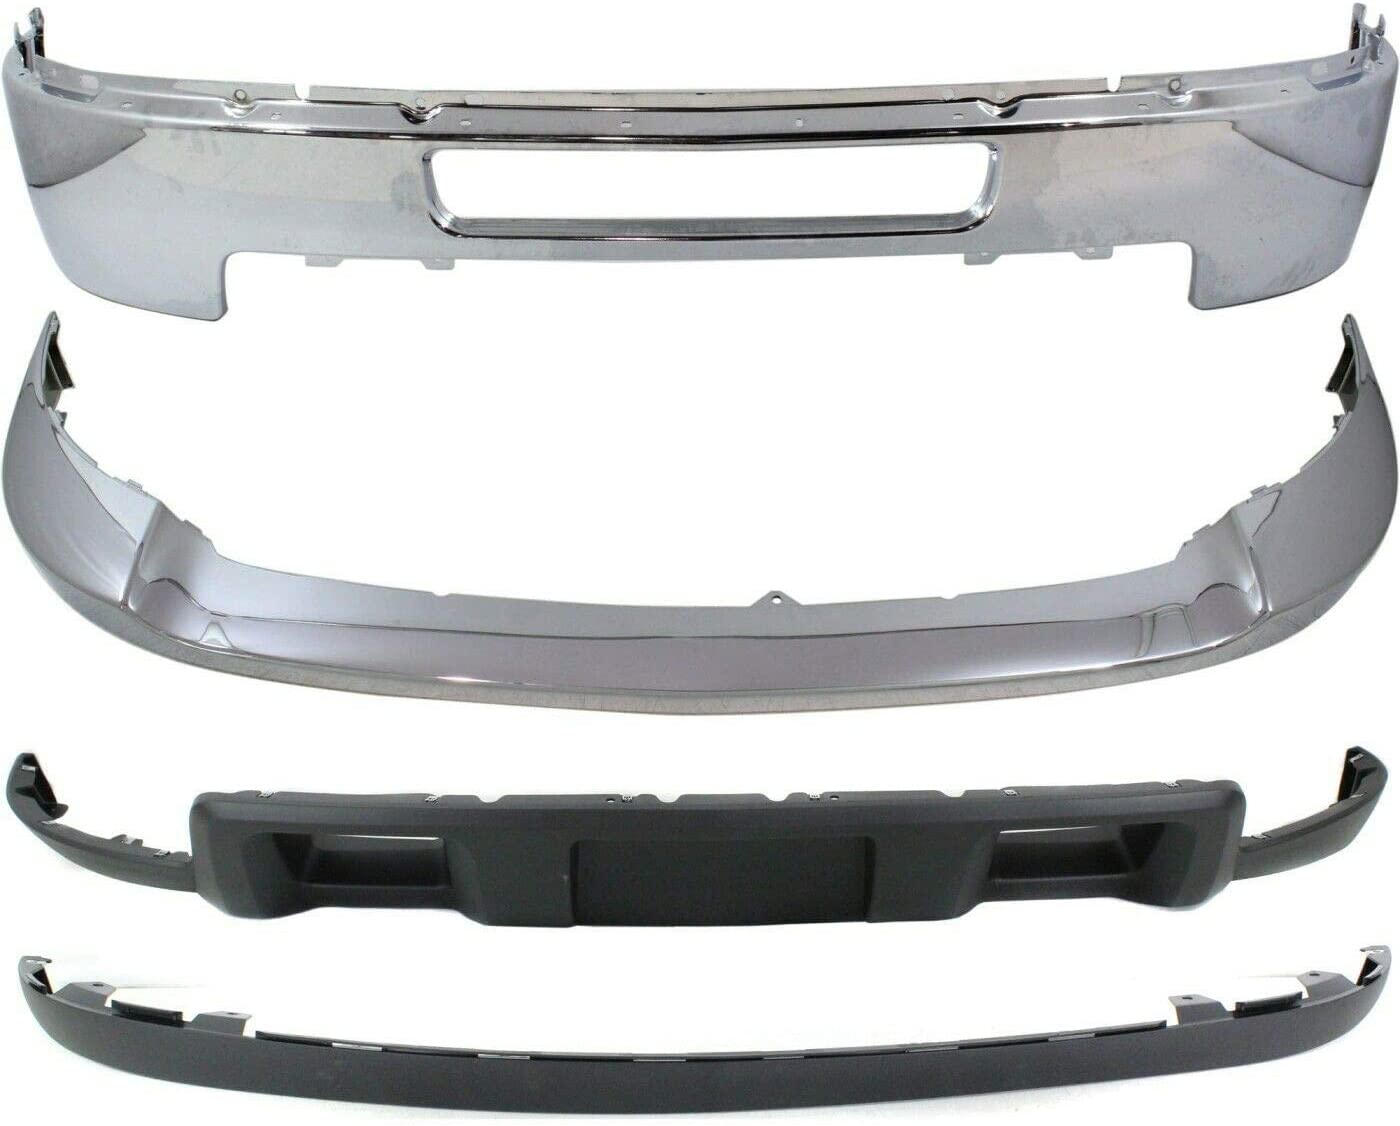 OLINDA Bumper Kit Compatible with 2500HD 2011-14 High quality new OFFicial store Silverado 2011-